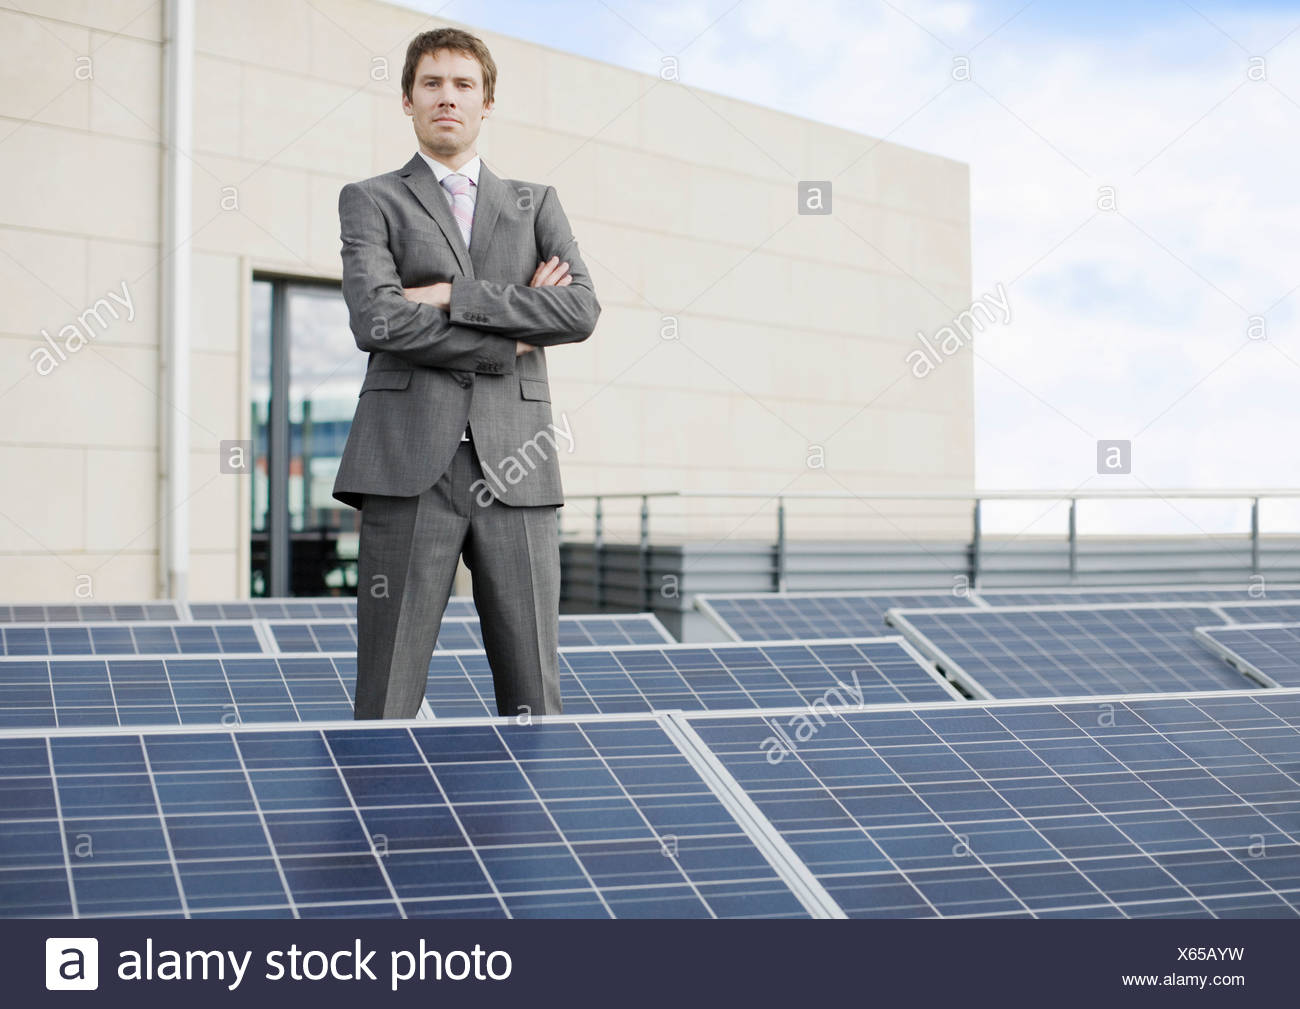 A businessman standing amongst solar panels - Stock Image